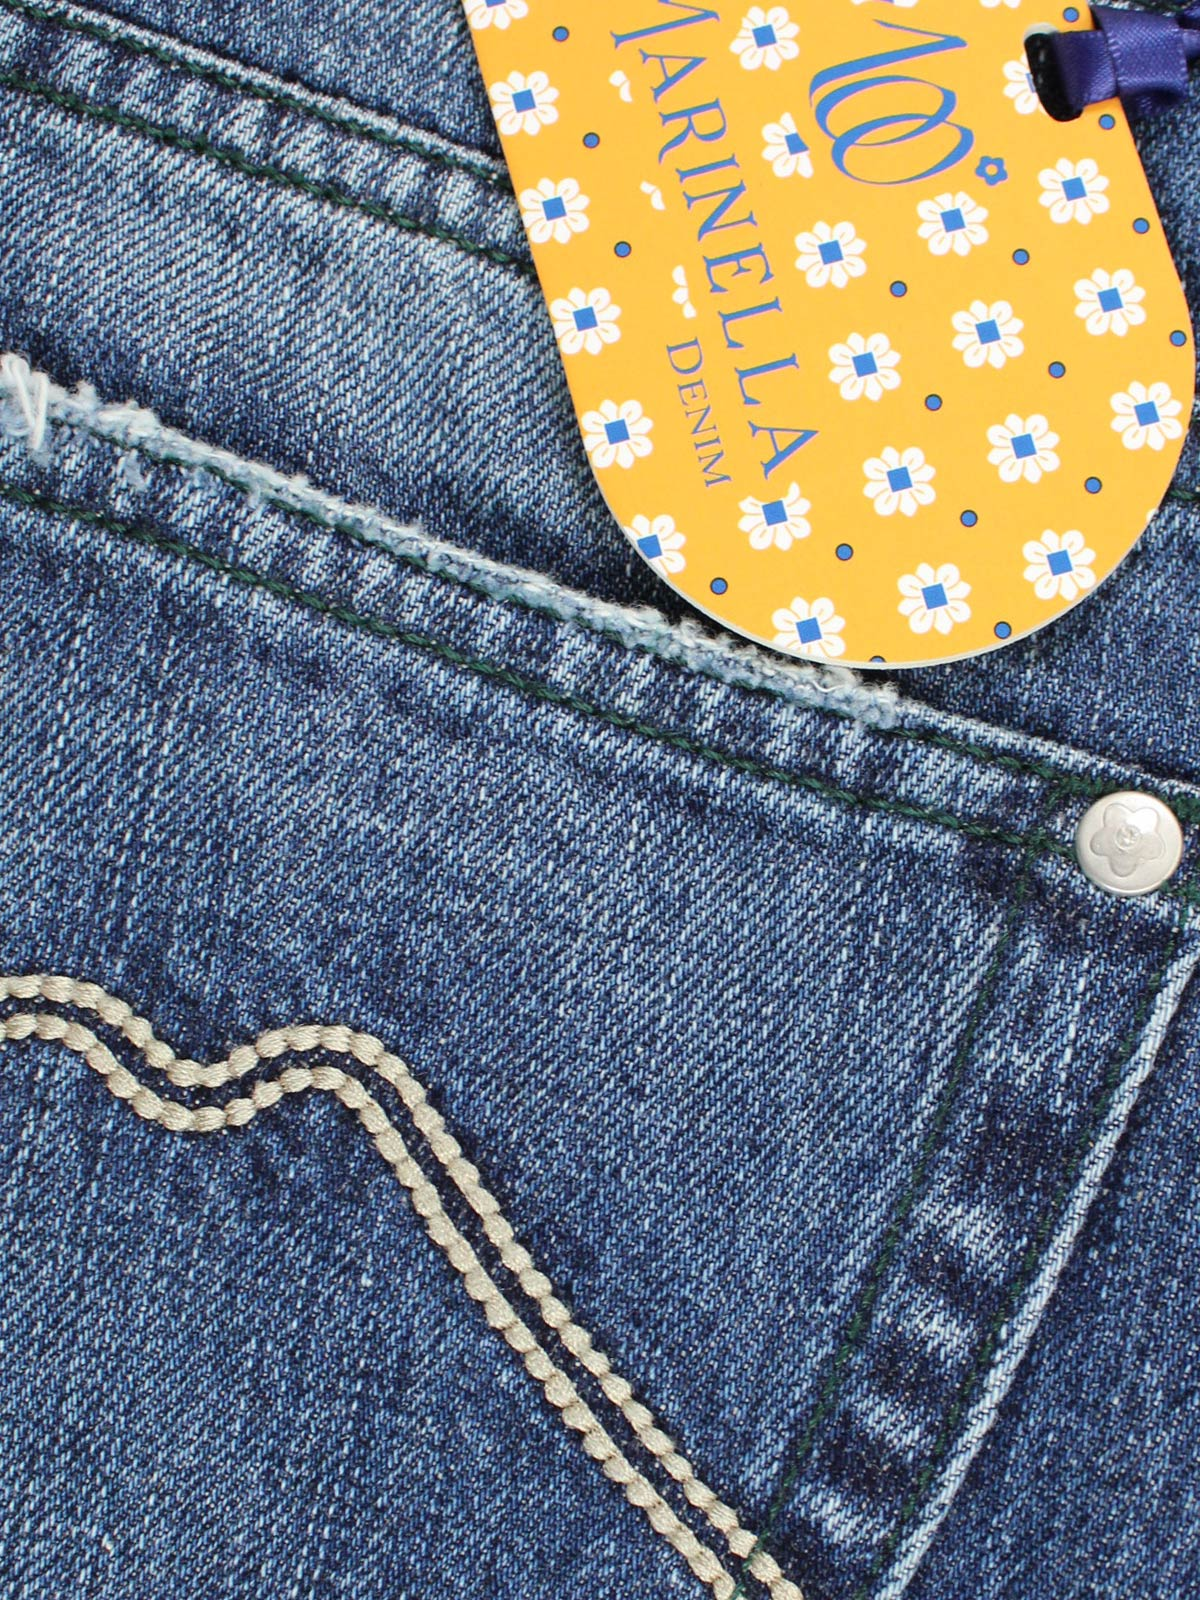 Marinella Denim Jeans Vintage Button Fly Slim Fit